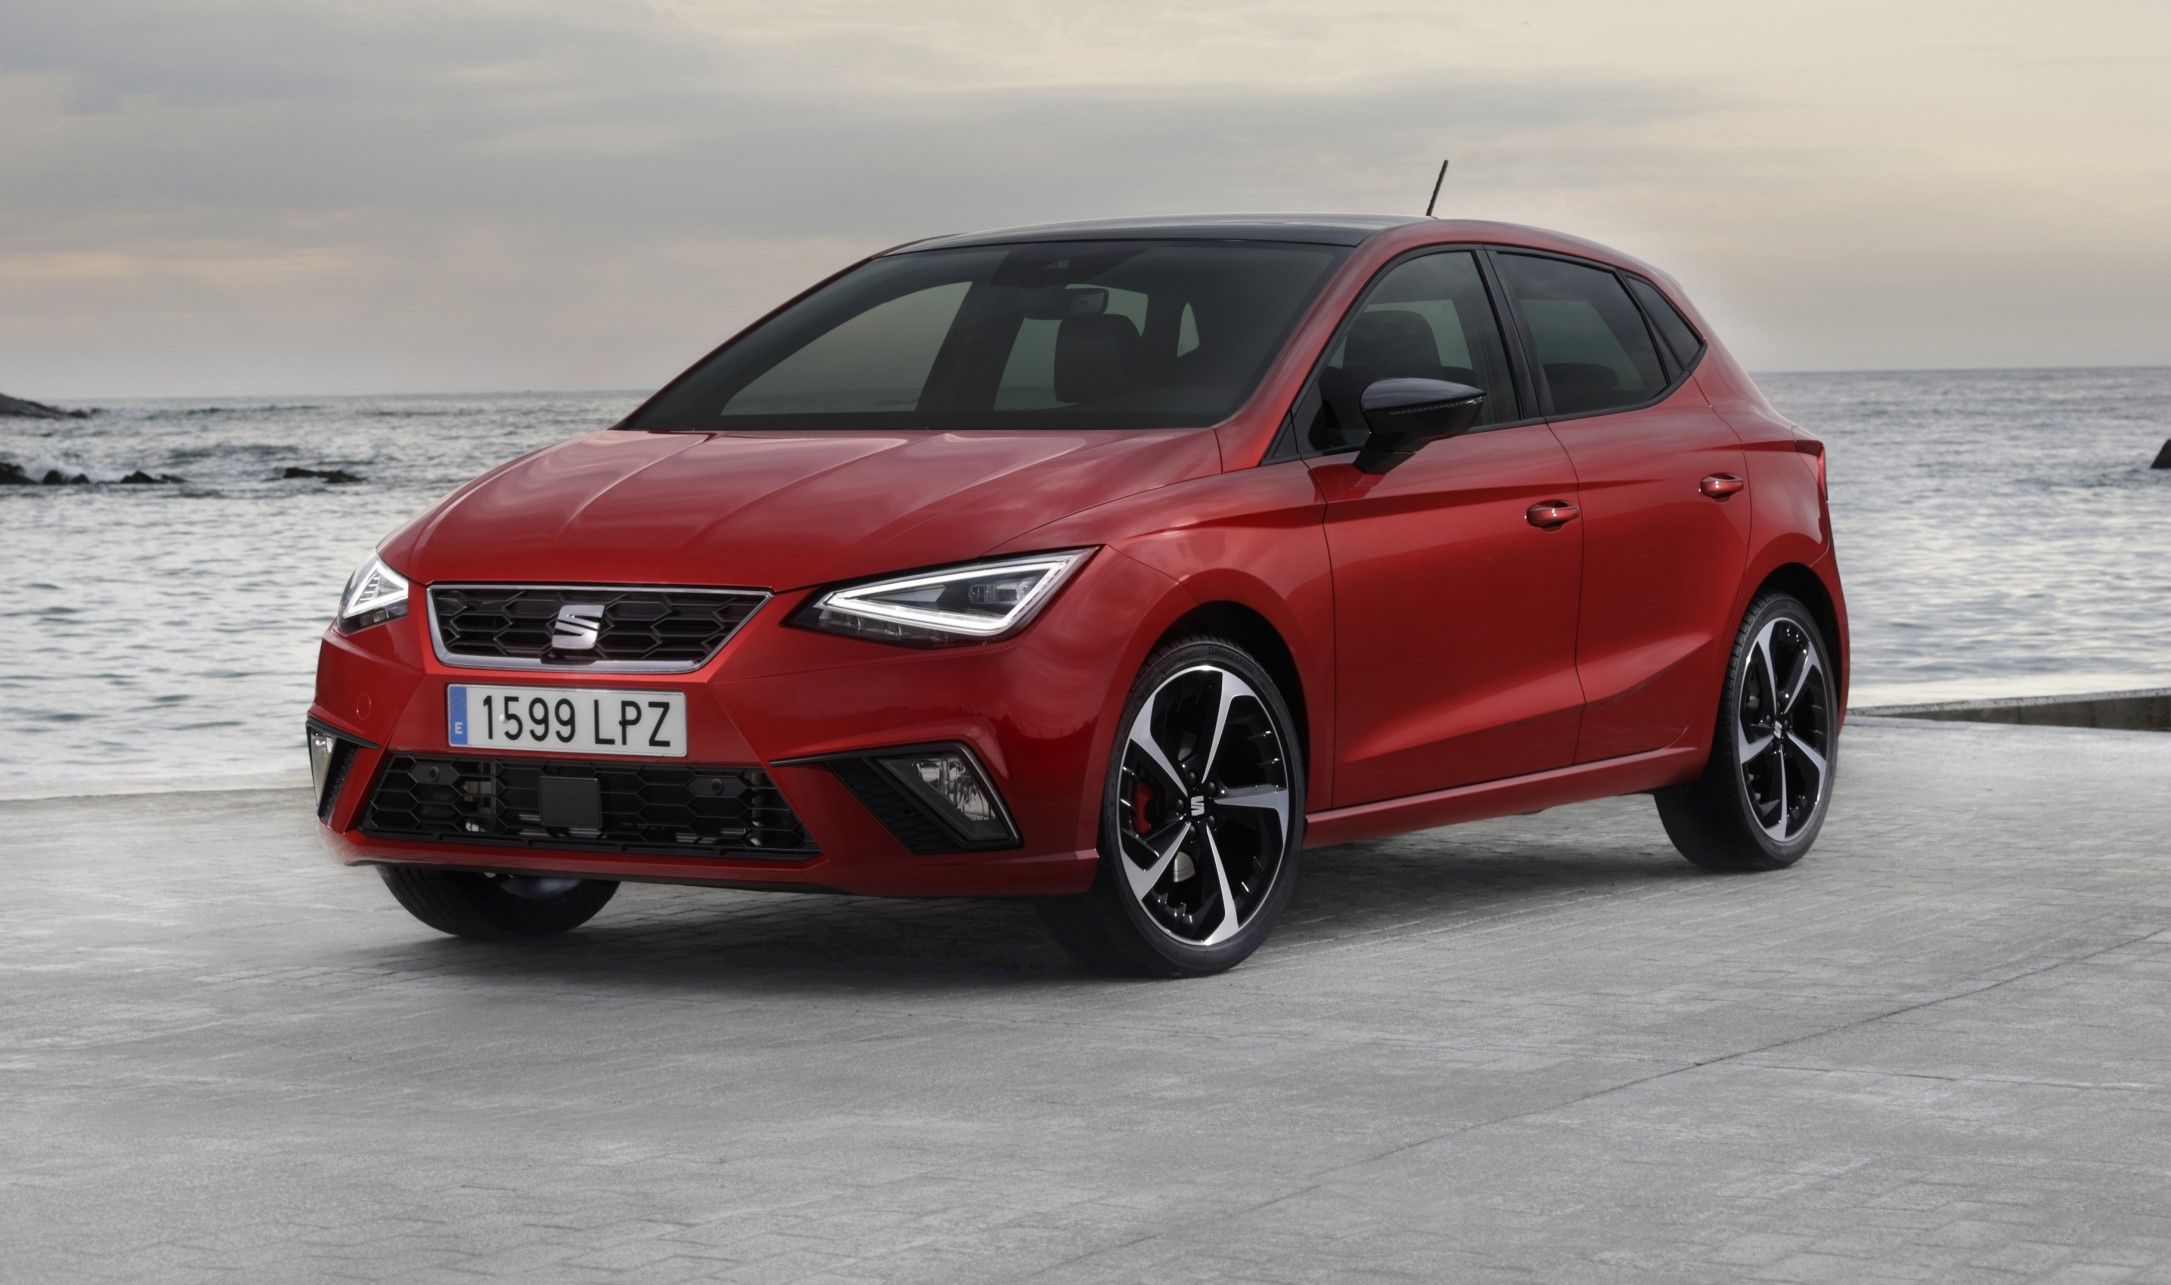 SEAT Leon gets a revamp